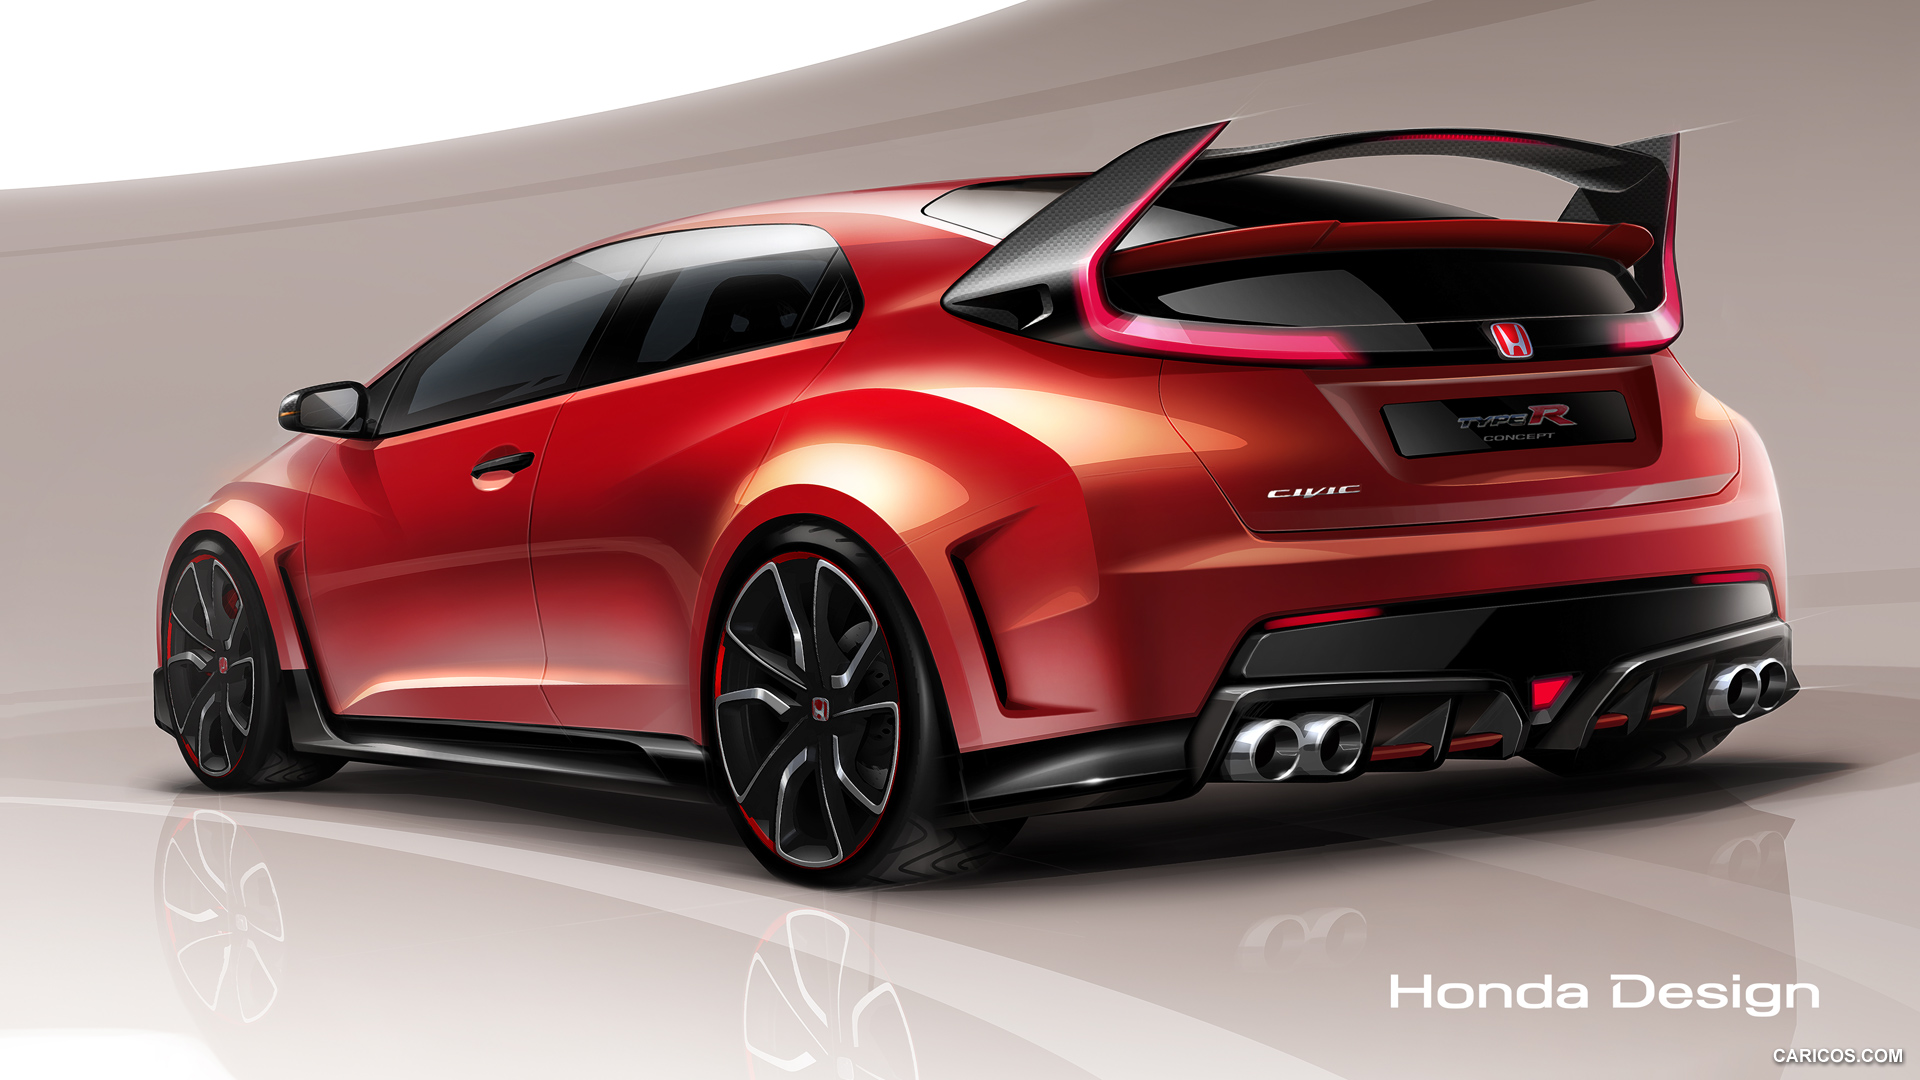 Honda Civic Type R 2018 Hd Wallpapers Free Download